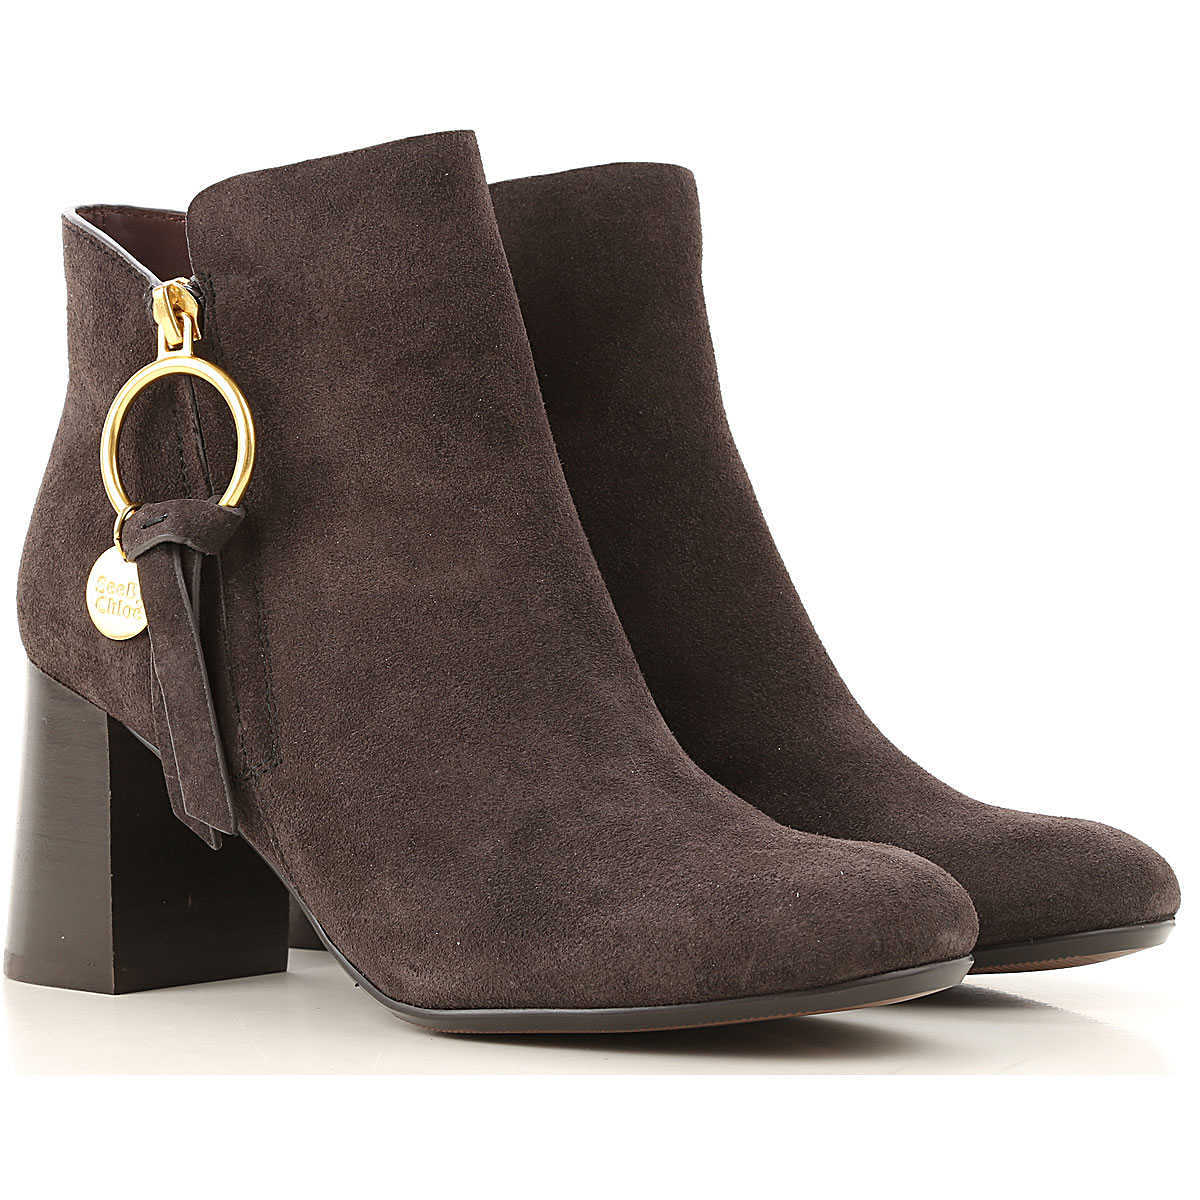 See By Chloe Boots for Women 4.5 5.5 6 6.5 7.5 8.5 Booties UK - GOOFASH